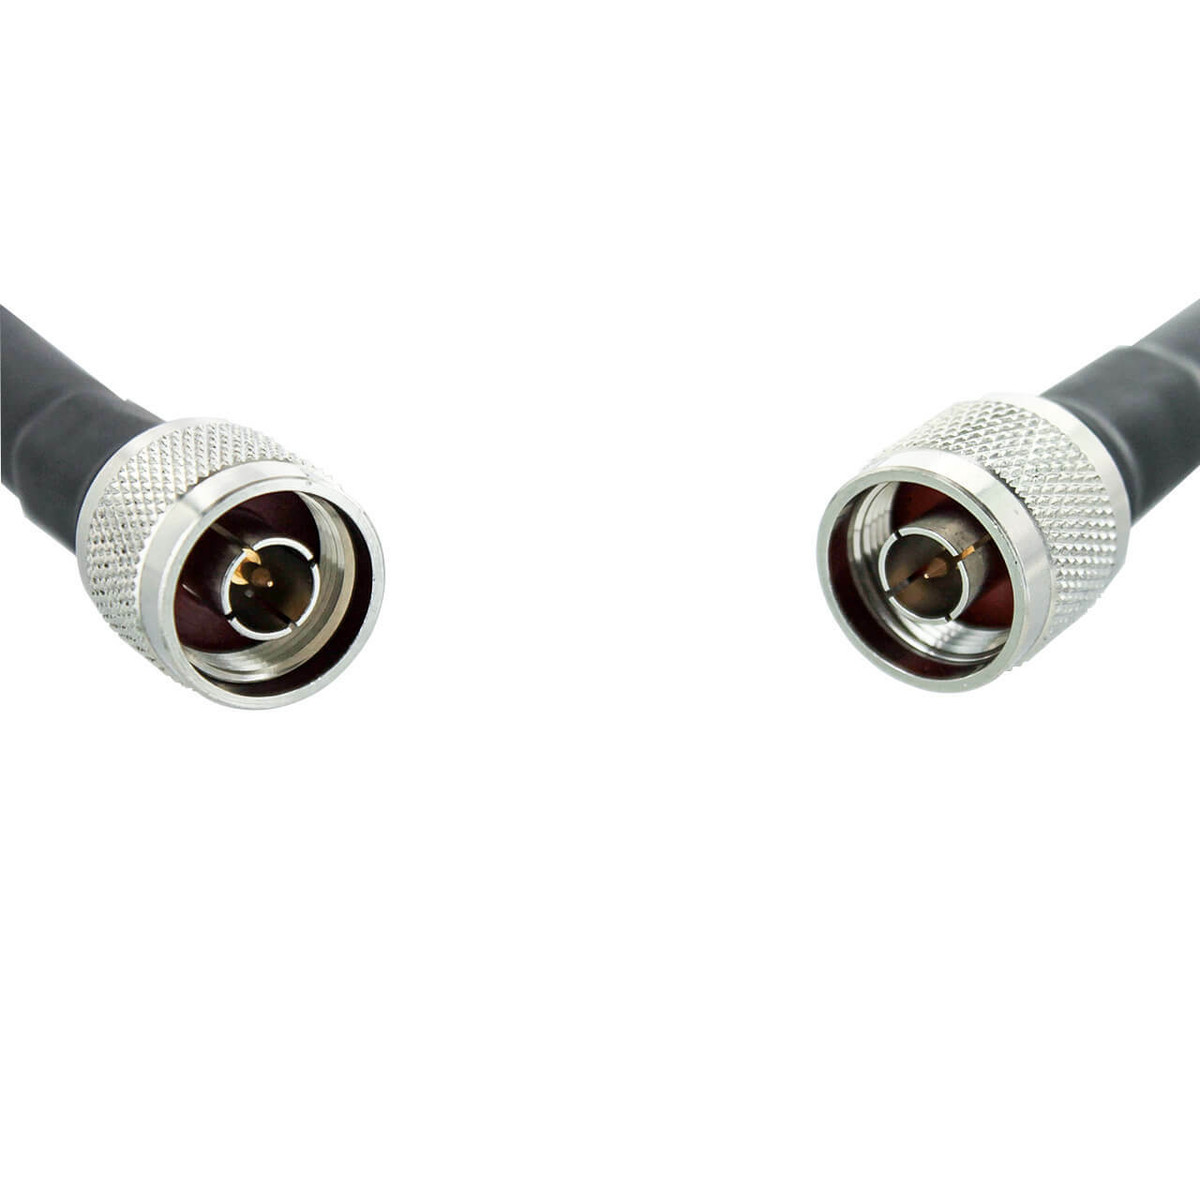 Bolton Tech Bolton Technical N-Male to N-Male Bolton400 Ultra Low-Loss Coax Cable or 100 ft Cable